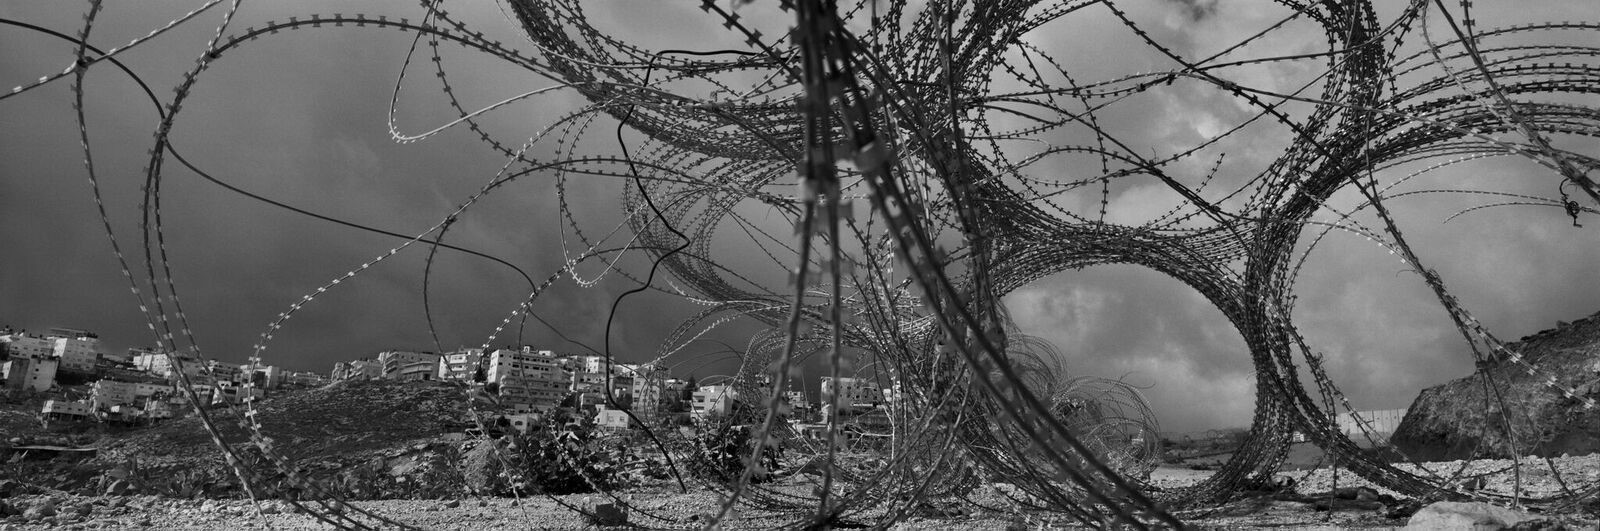 Barbed wire on the Israeli/Palestine border.